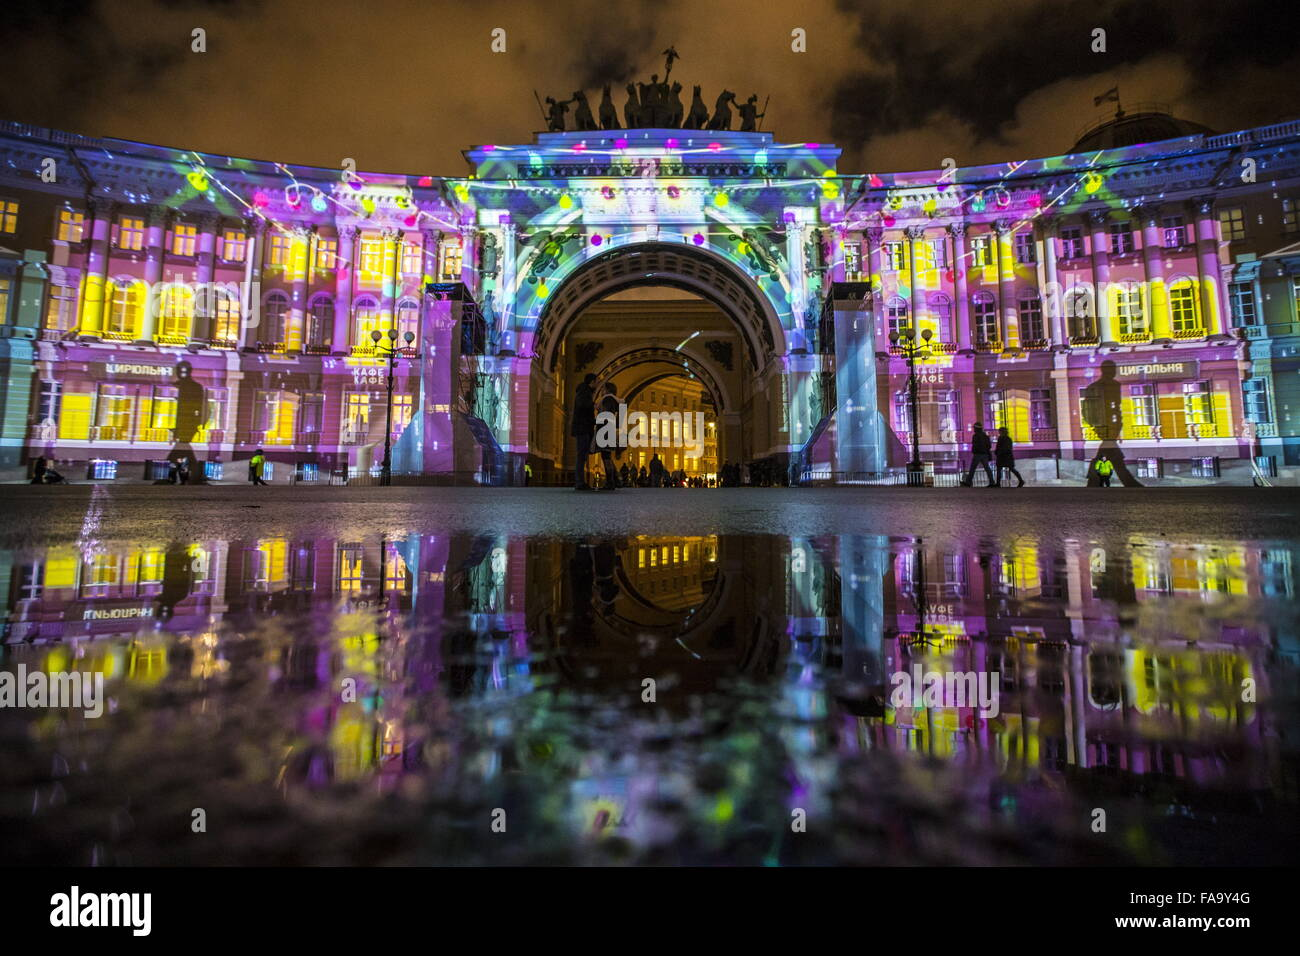 Laser show at Palace Square 2018 88